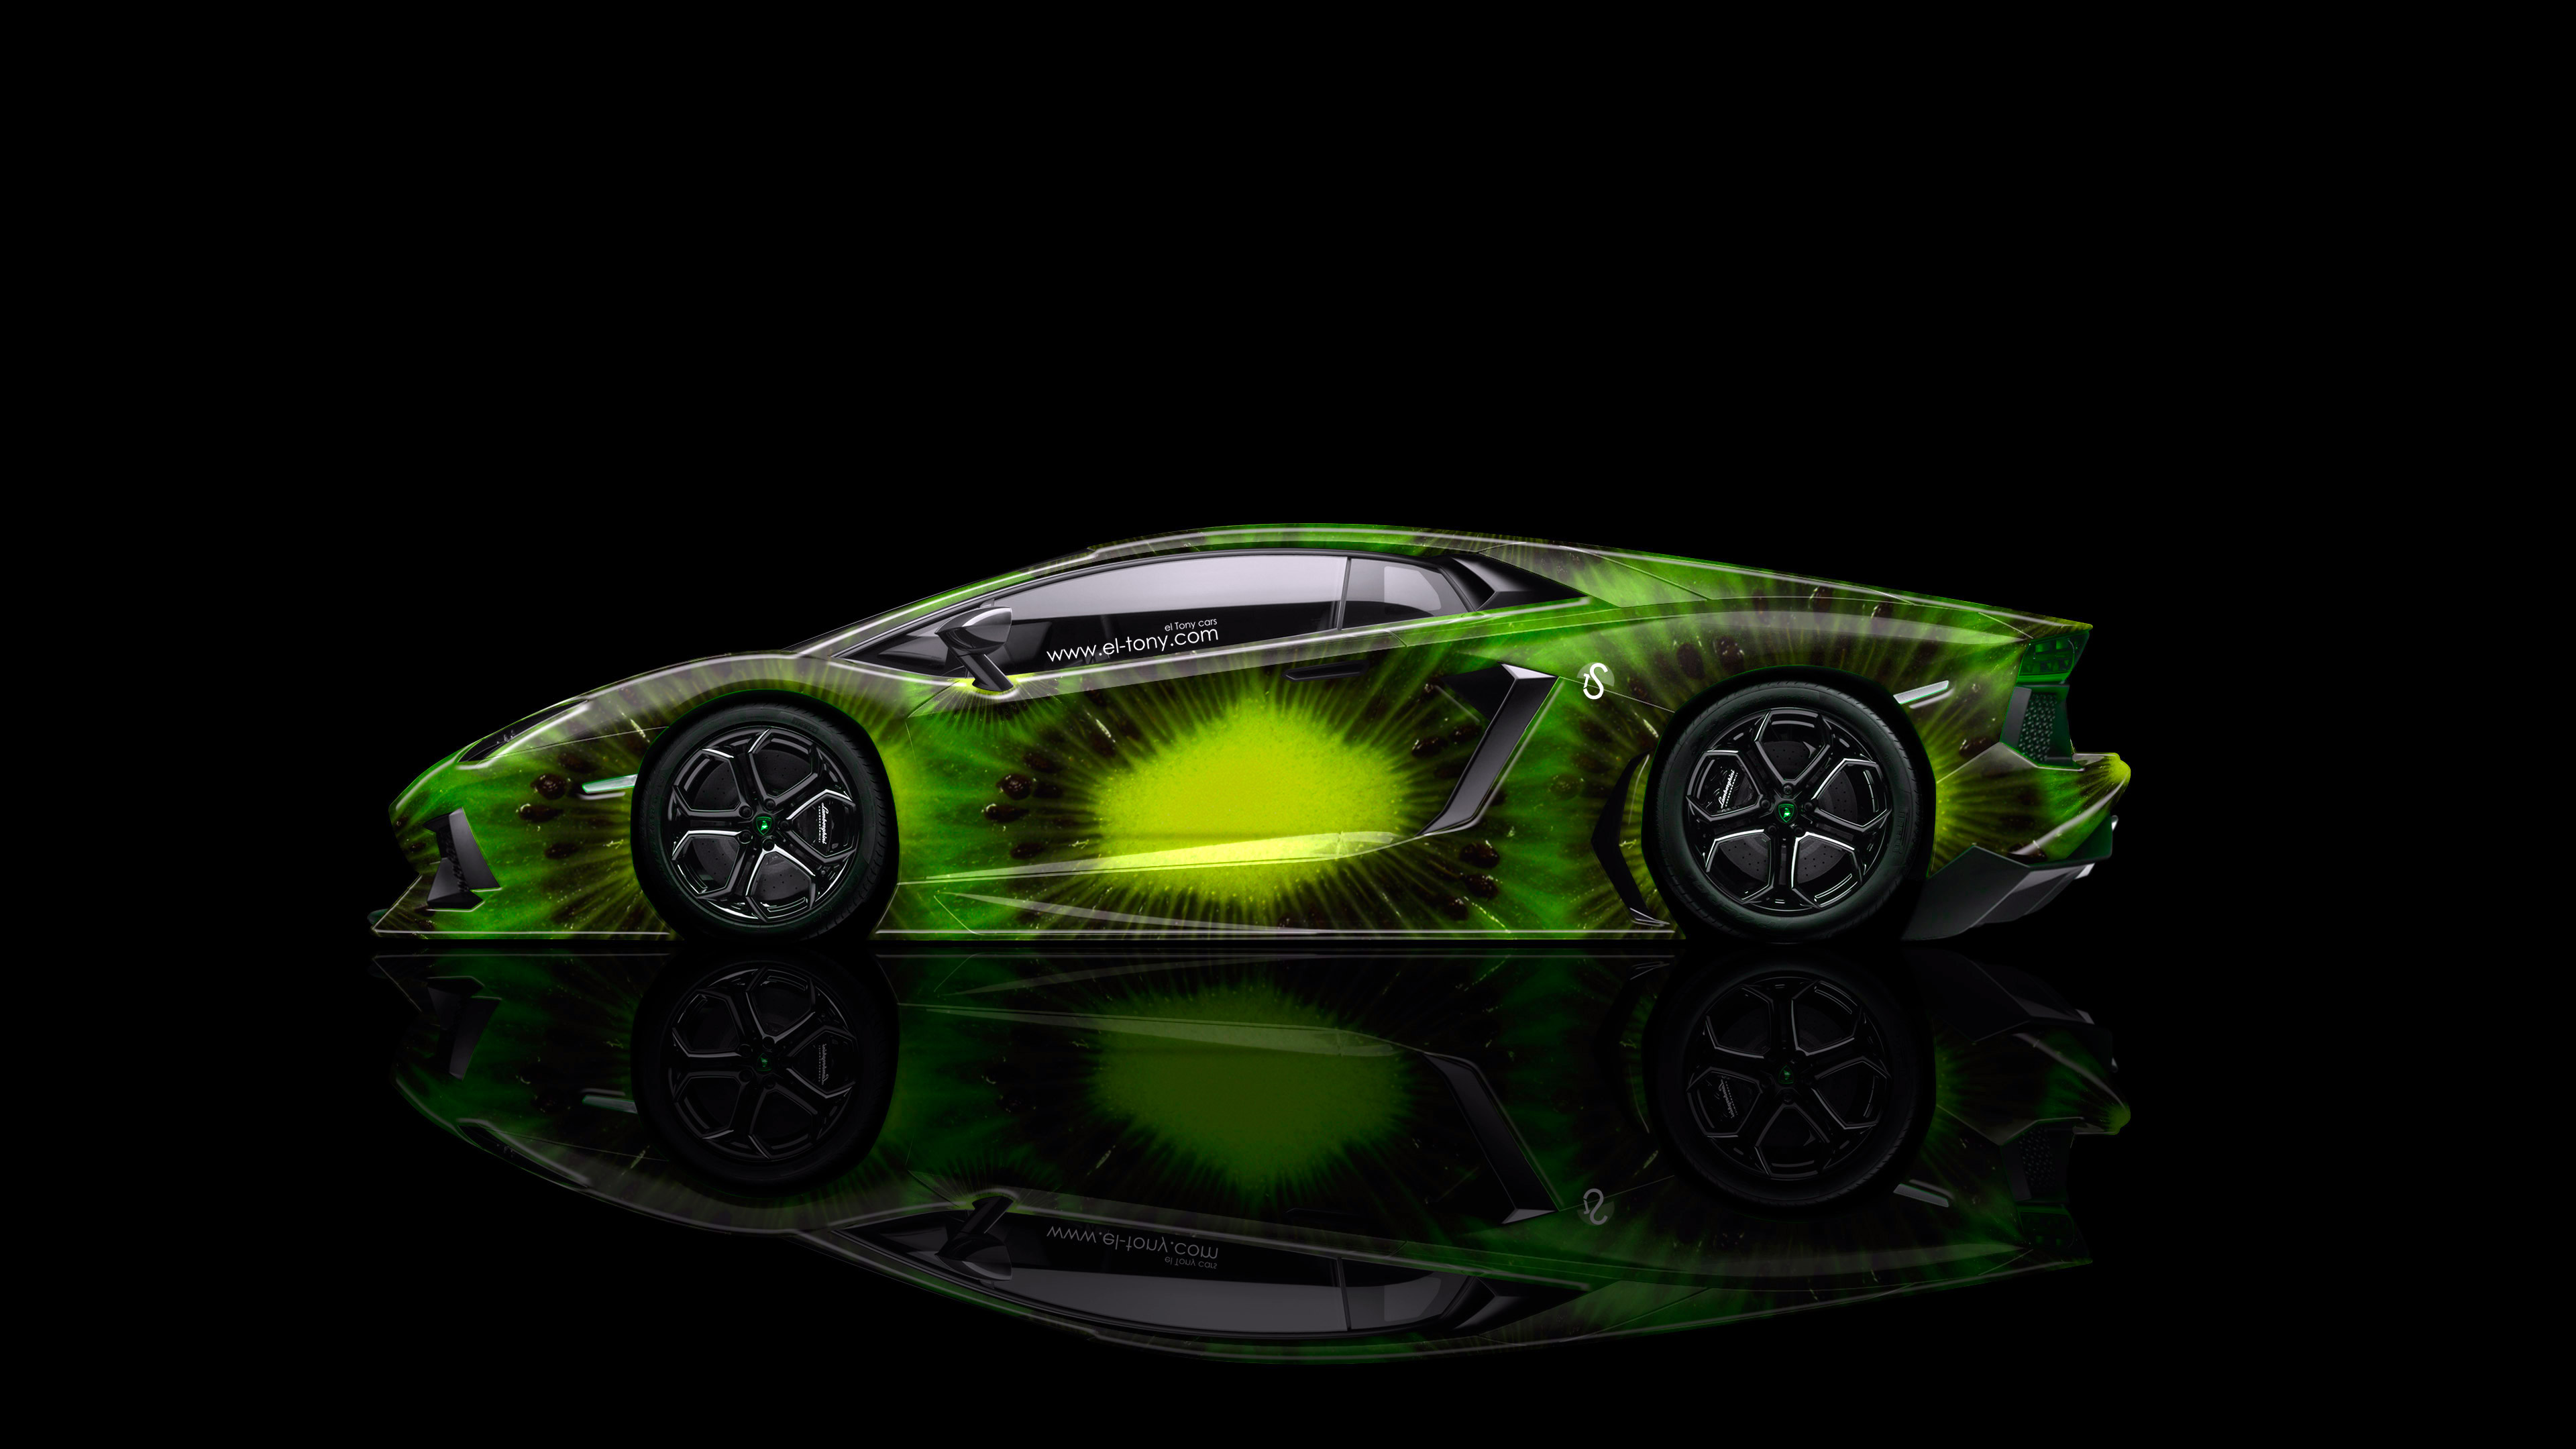 Bon Lamborghini Aventador Side Kiwi Aerography Car 2014 Green